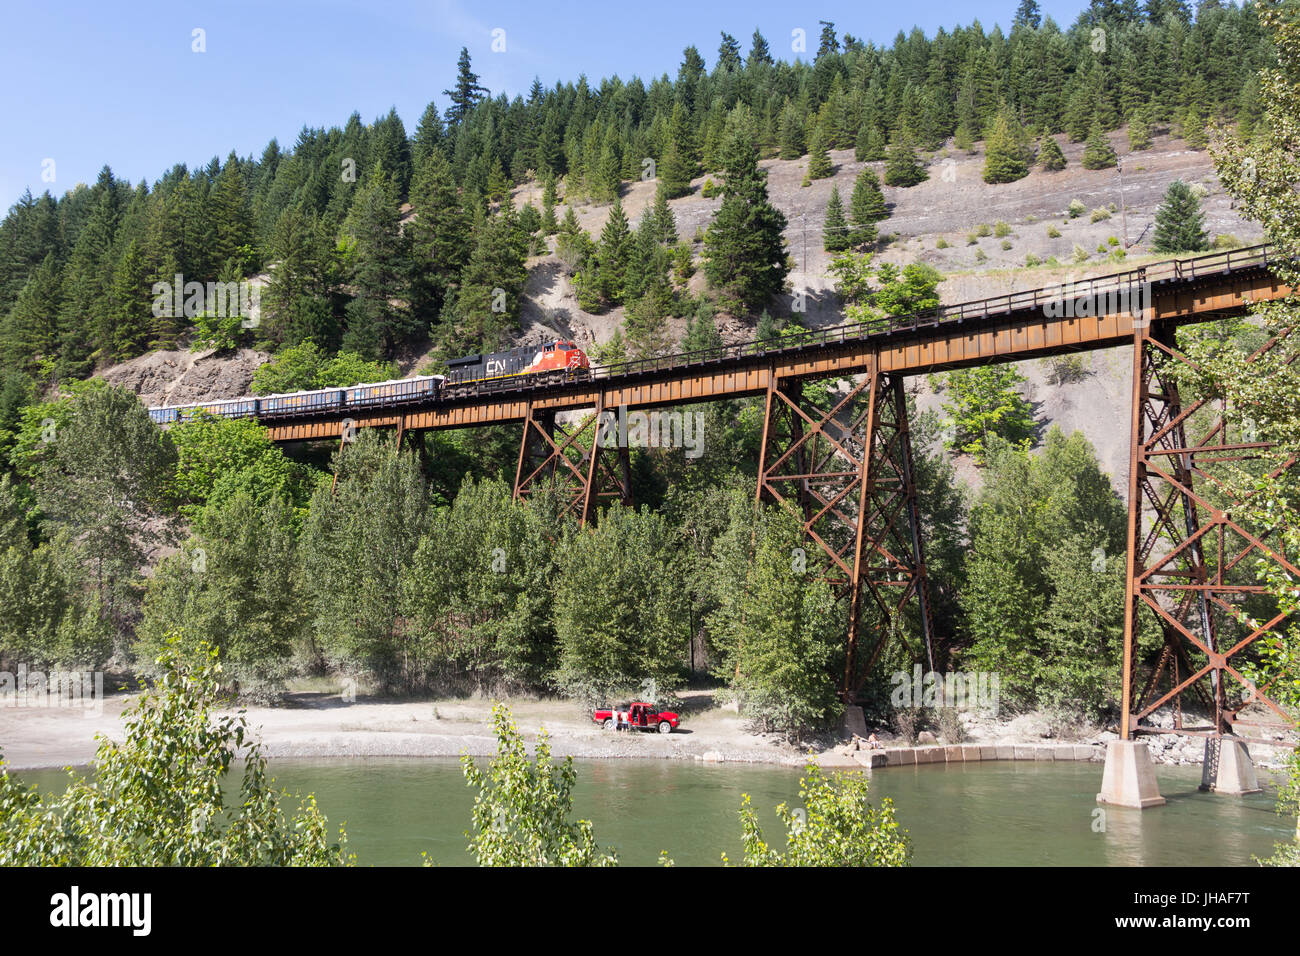 A train operated by CN Rail is crossing the Anderson Creek railway bridge in the Fraser Canyon near Boston Bar, - Stock Image